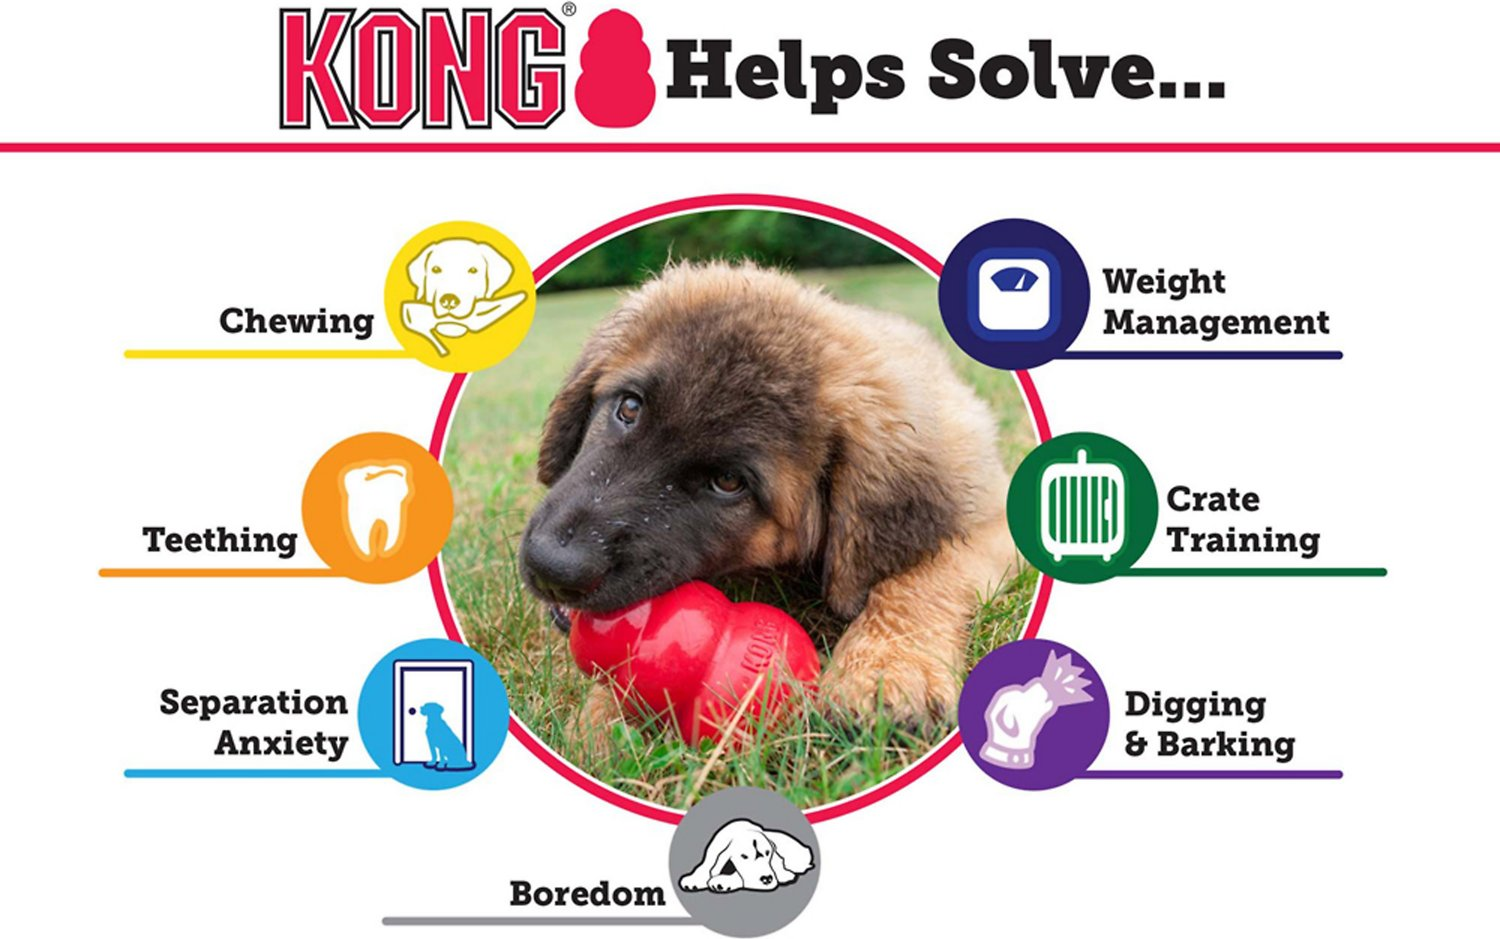 Kong Dog Kennel